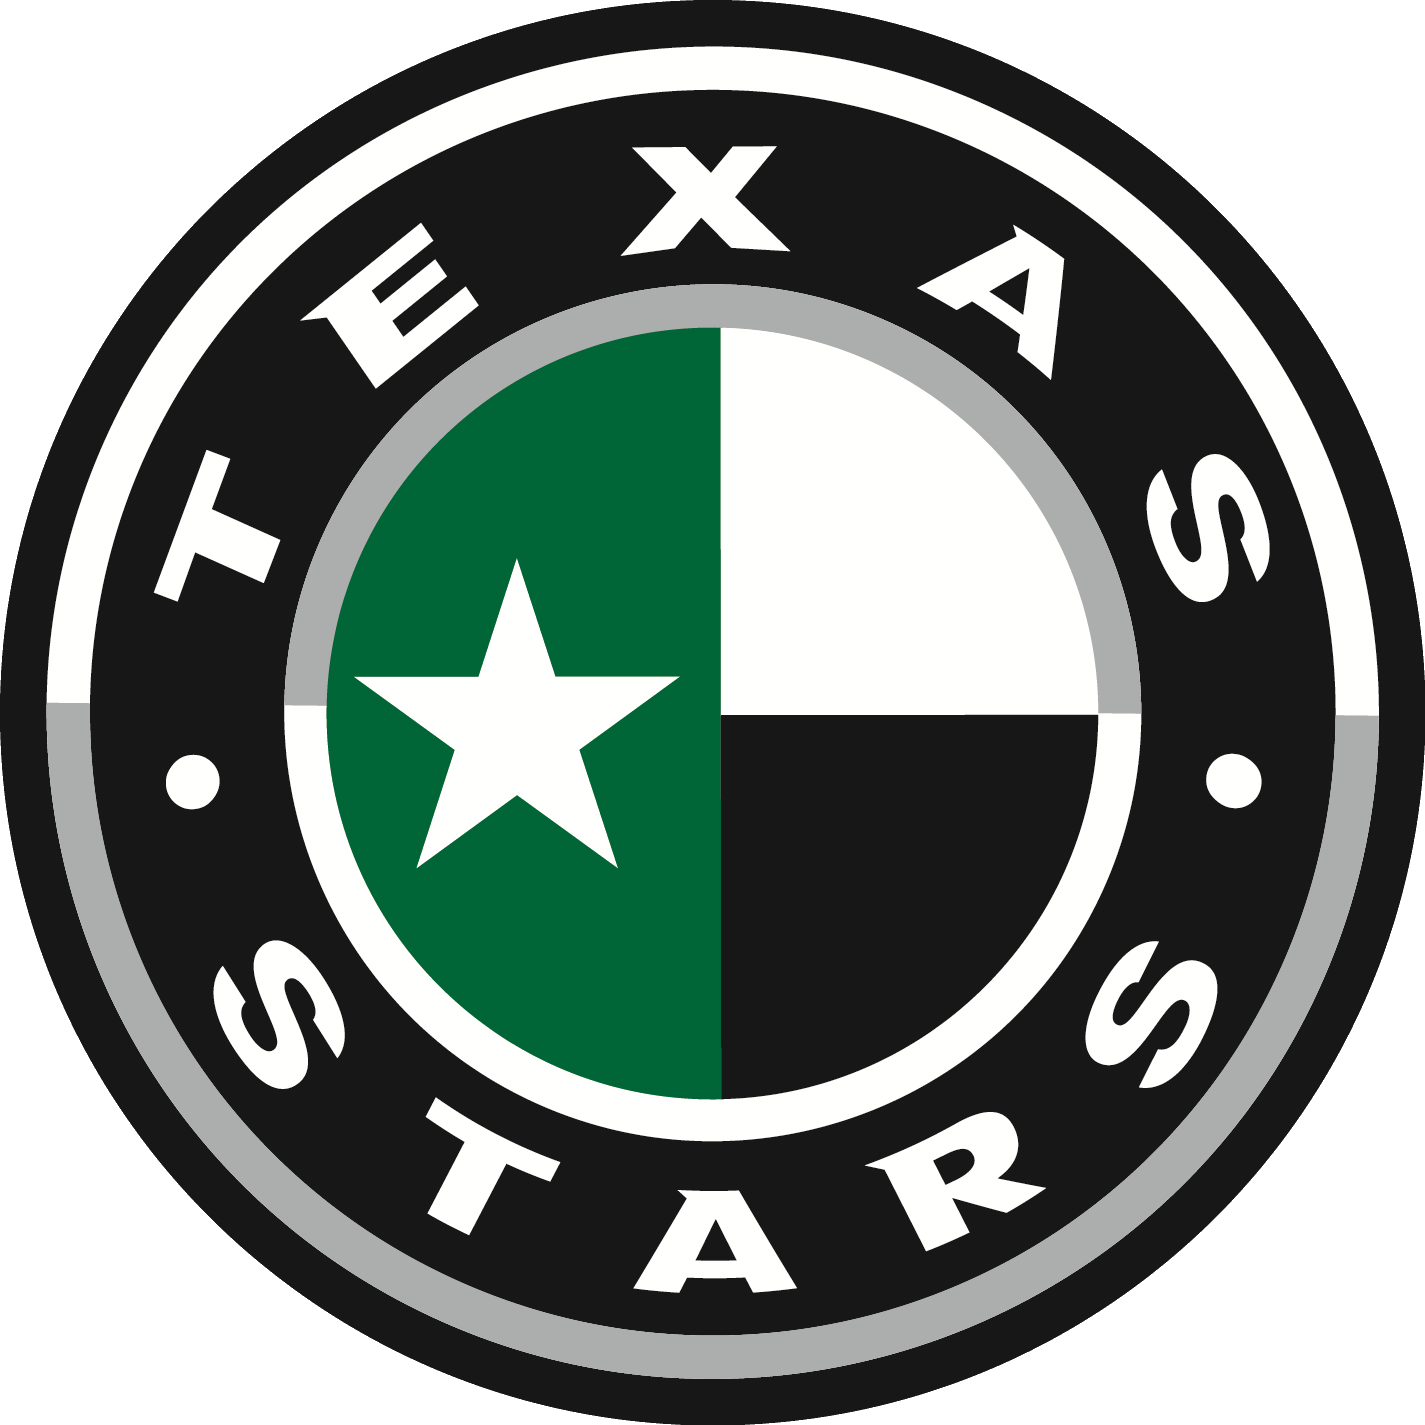 Texas ranger star clipart png black and white stock Texas Logos png black and white stock